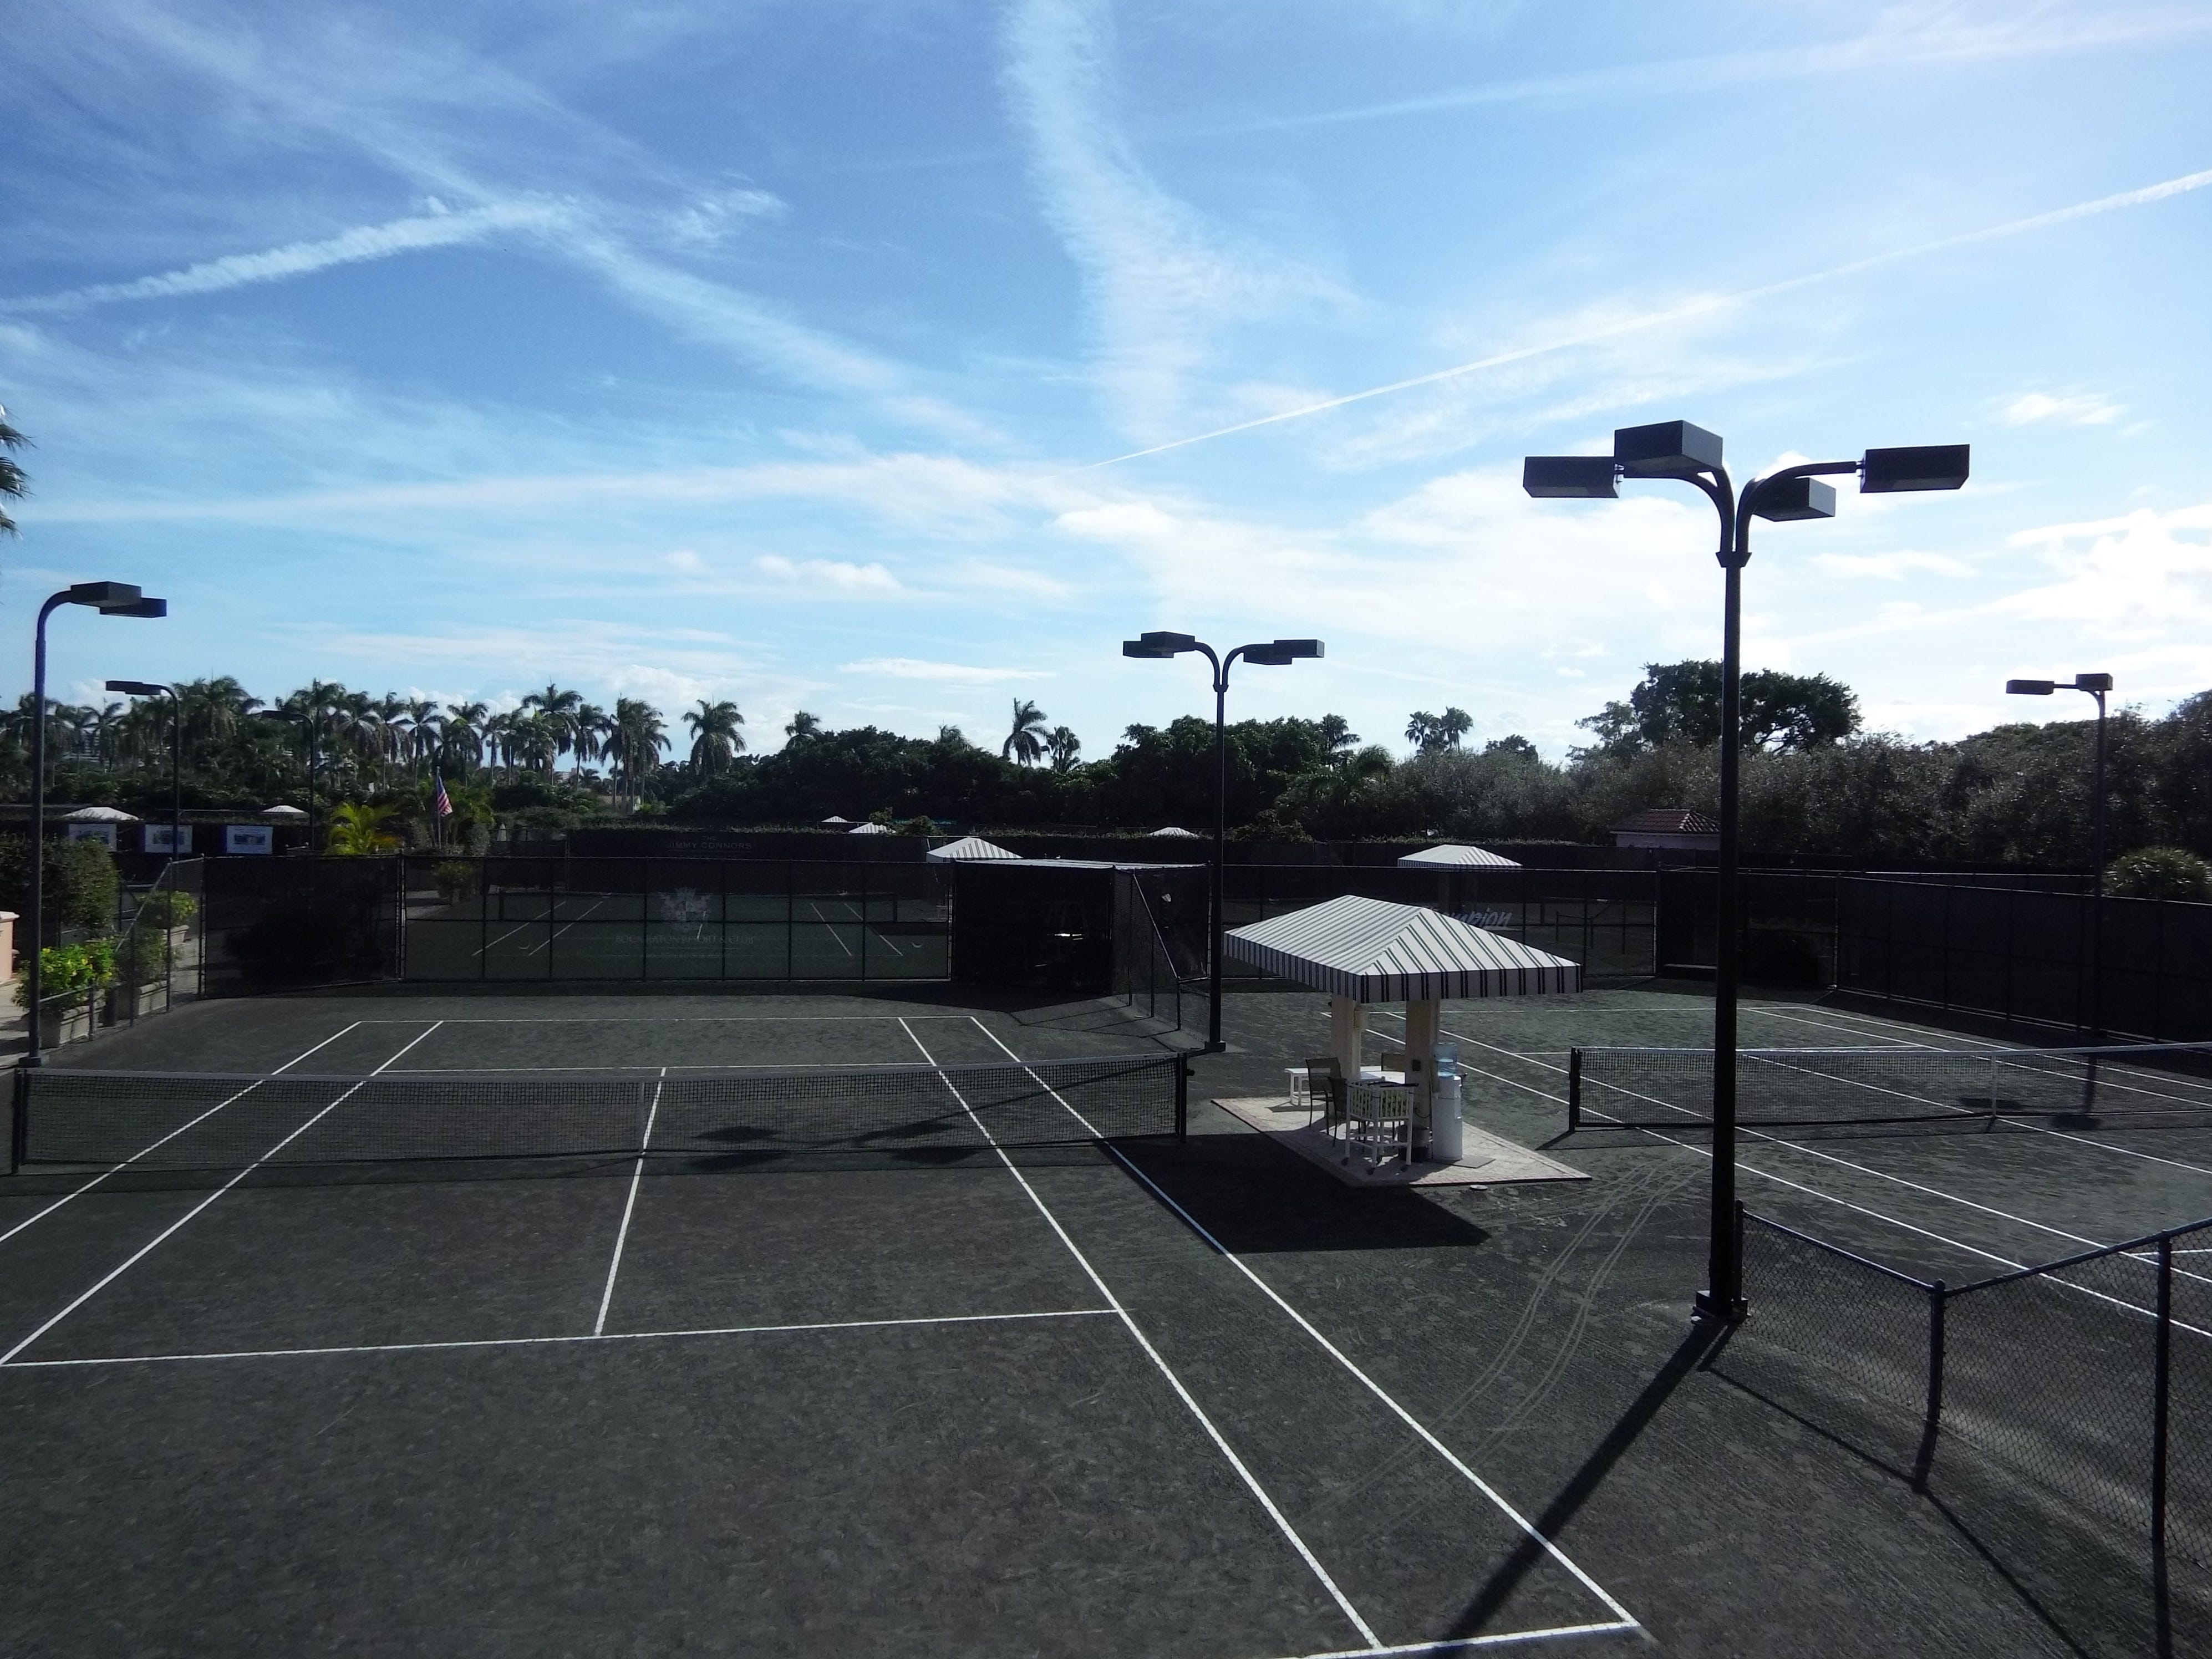 Thirty tennis courts are found at Boca Raton Resort & Club.